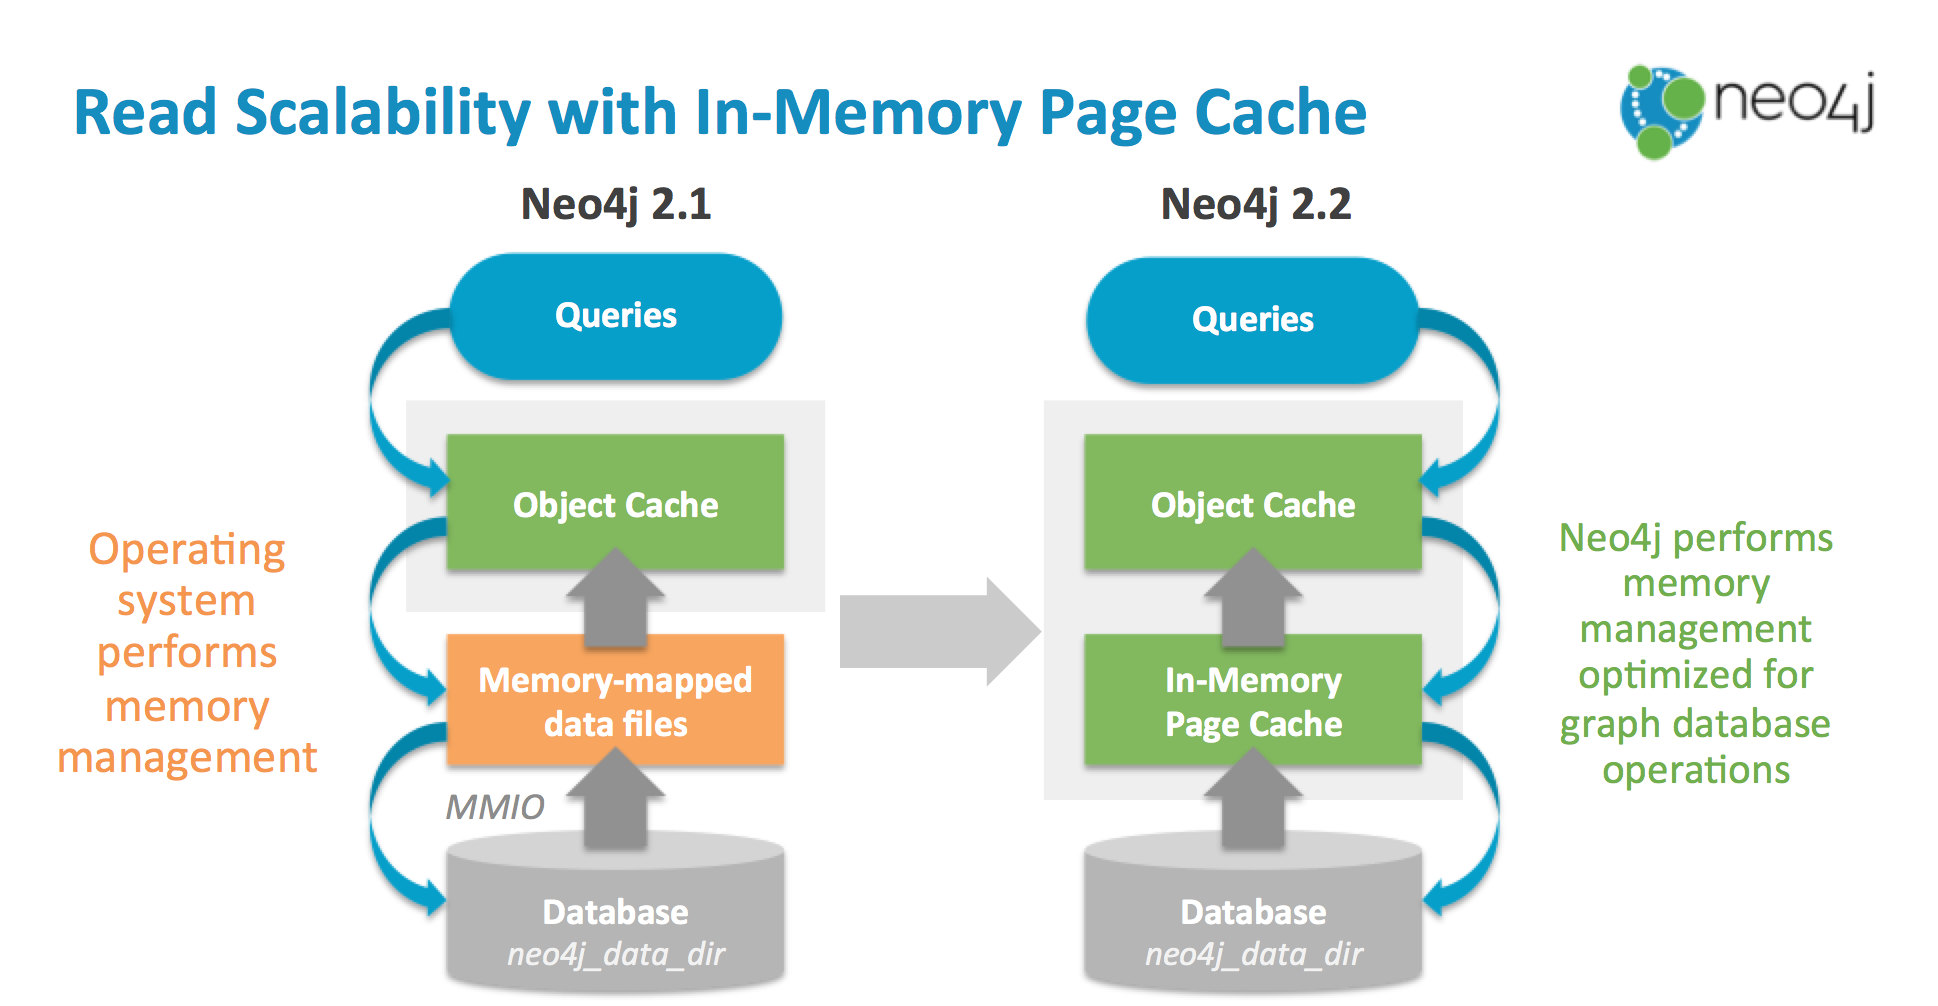 neo4j2.2-page-cache